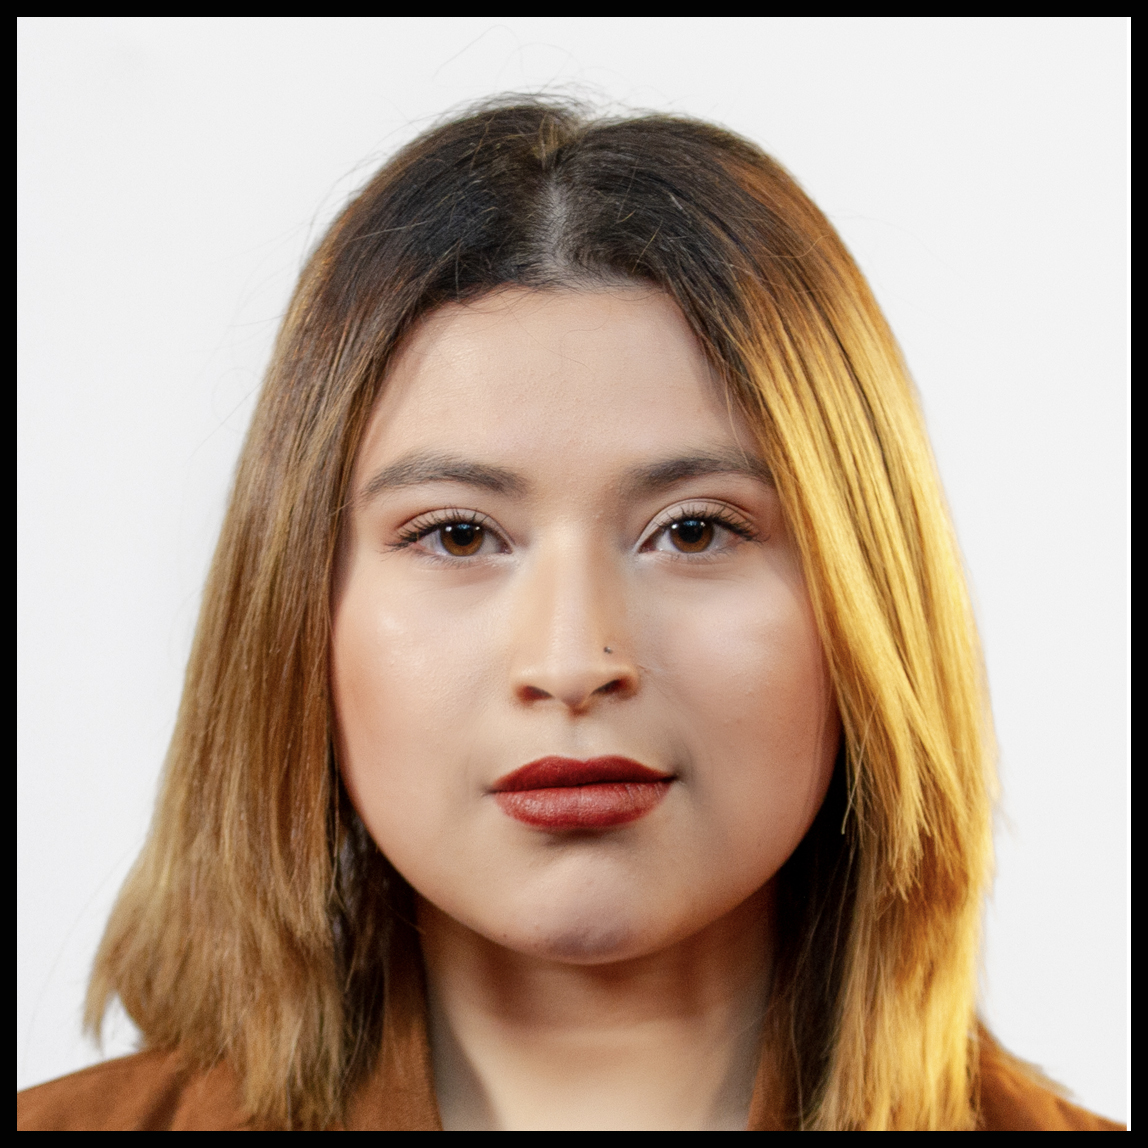 Yeny Villalta Villatoro  Age: 22 Category: Arts & Humanities Location: Hyattsville